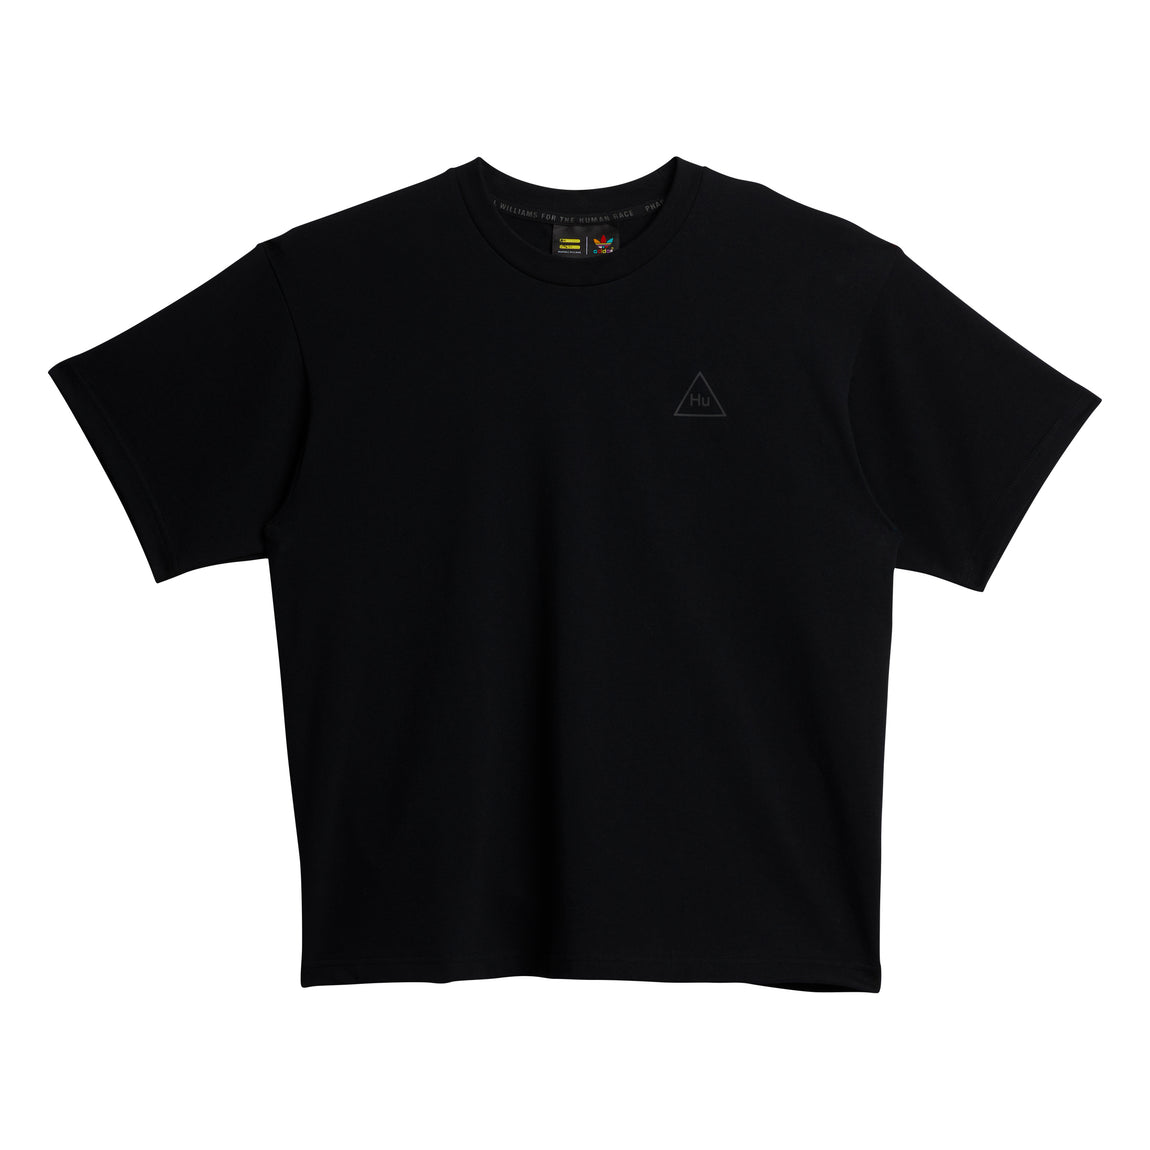 Adidas PW BAS Shirt (Black) - Adidas PW BAS Shirt (Black) -